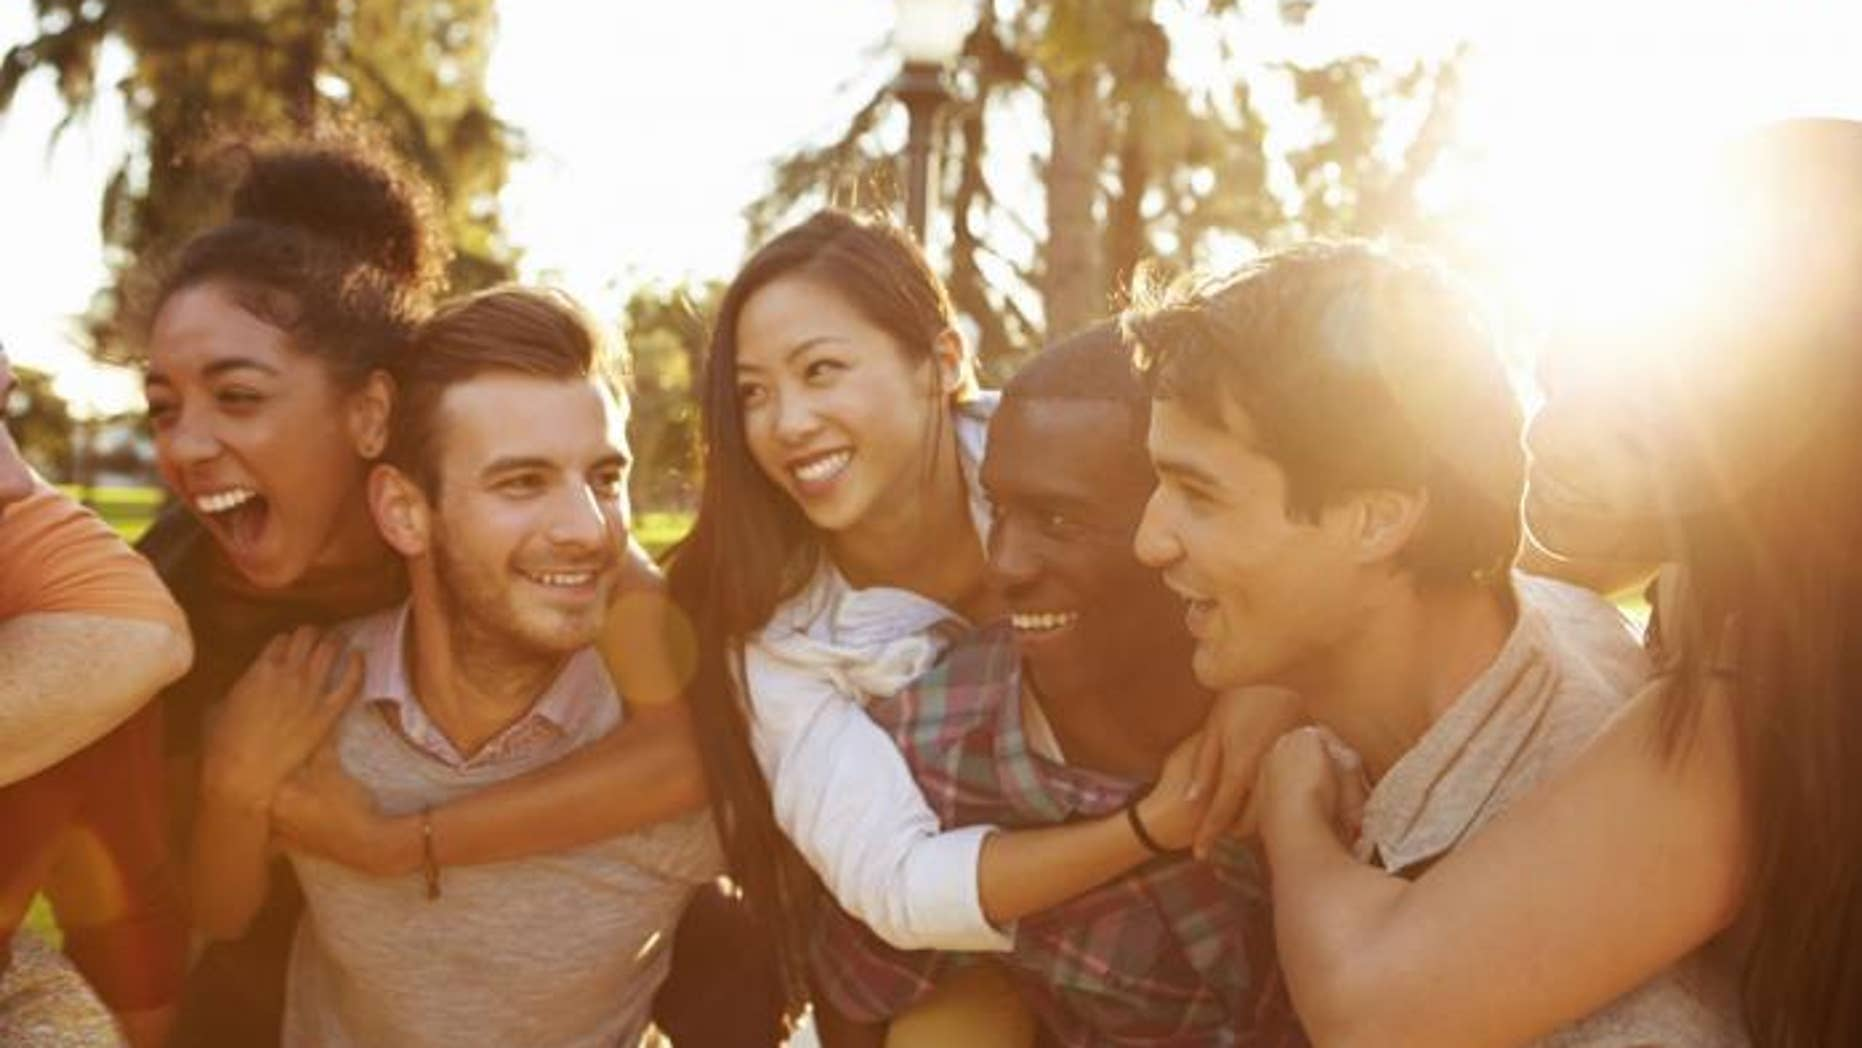 Being around attractive friends makes you hotter